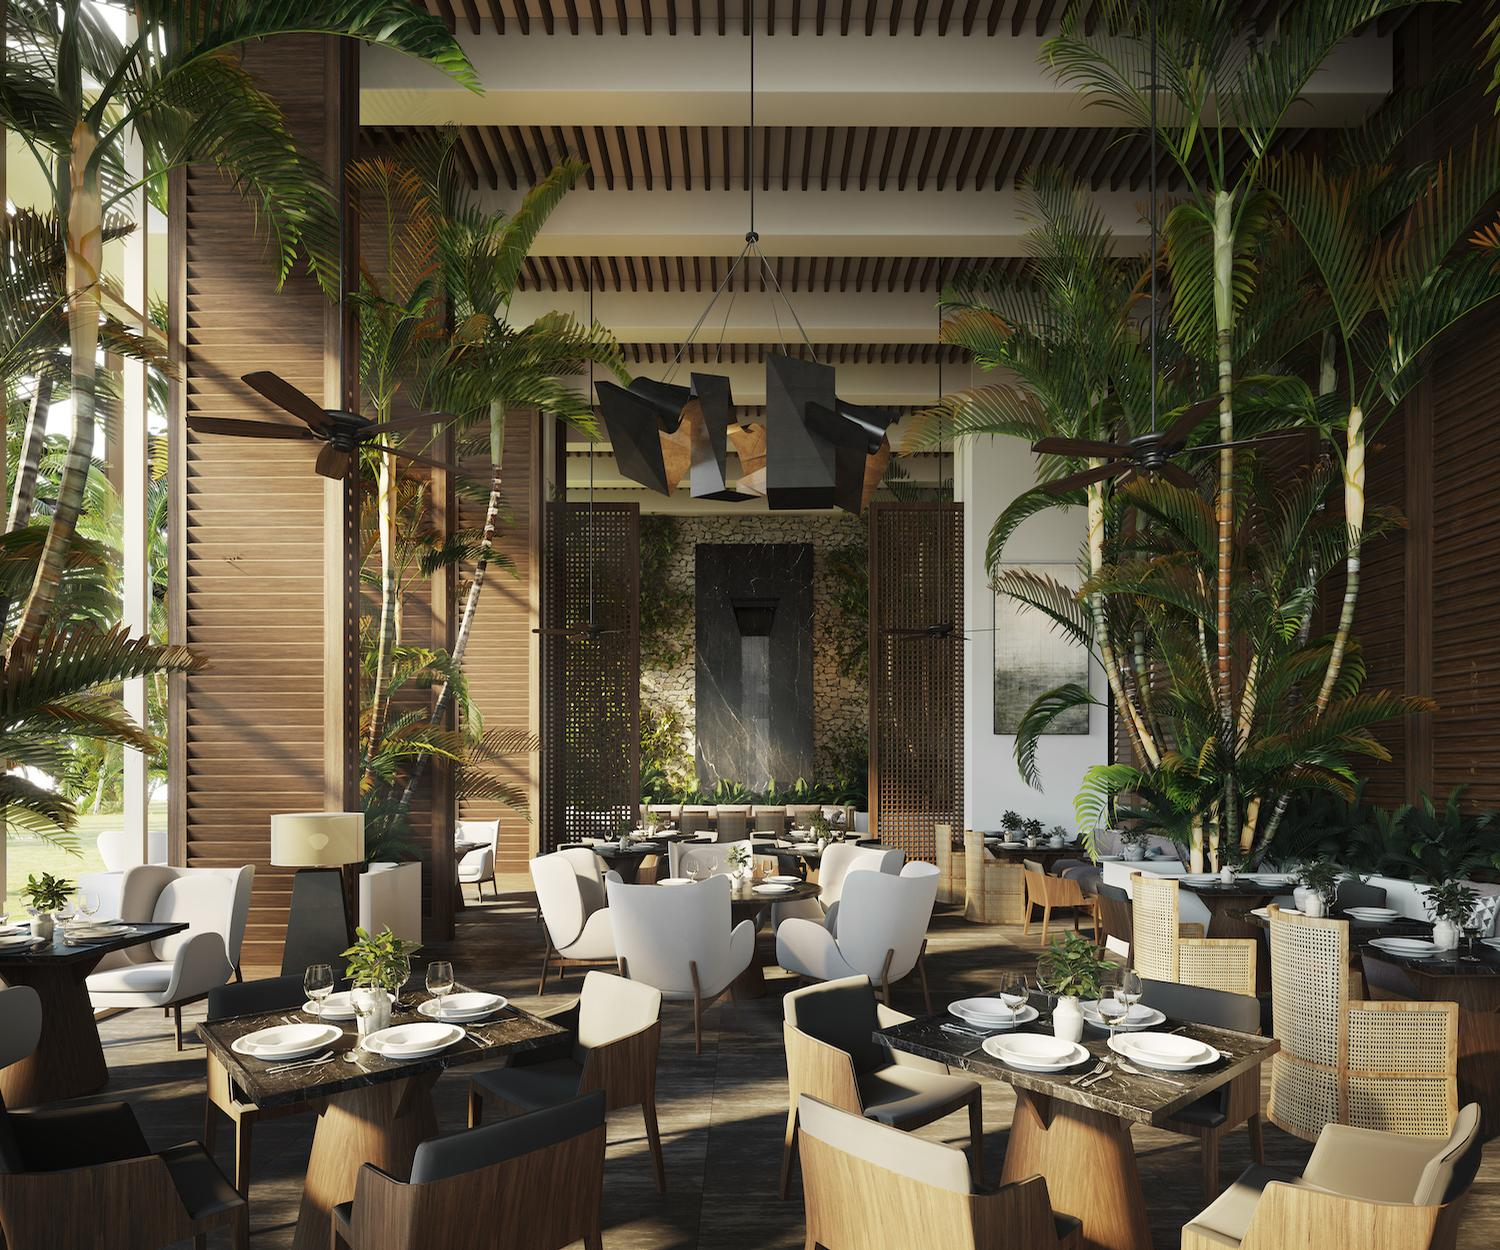 The property will include 100 suites and private residences with views of the Pacific Ocean, as well as a focus on healthy nutrition